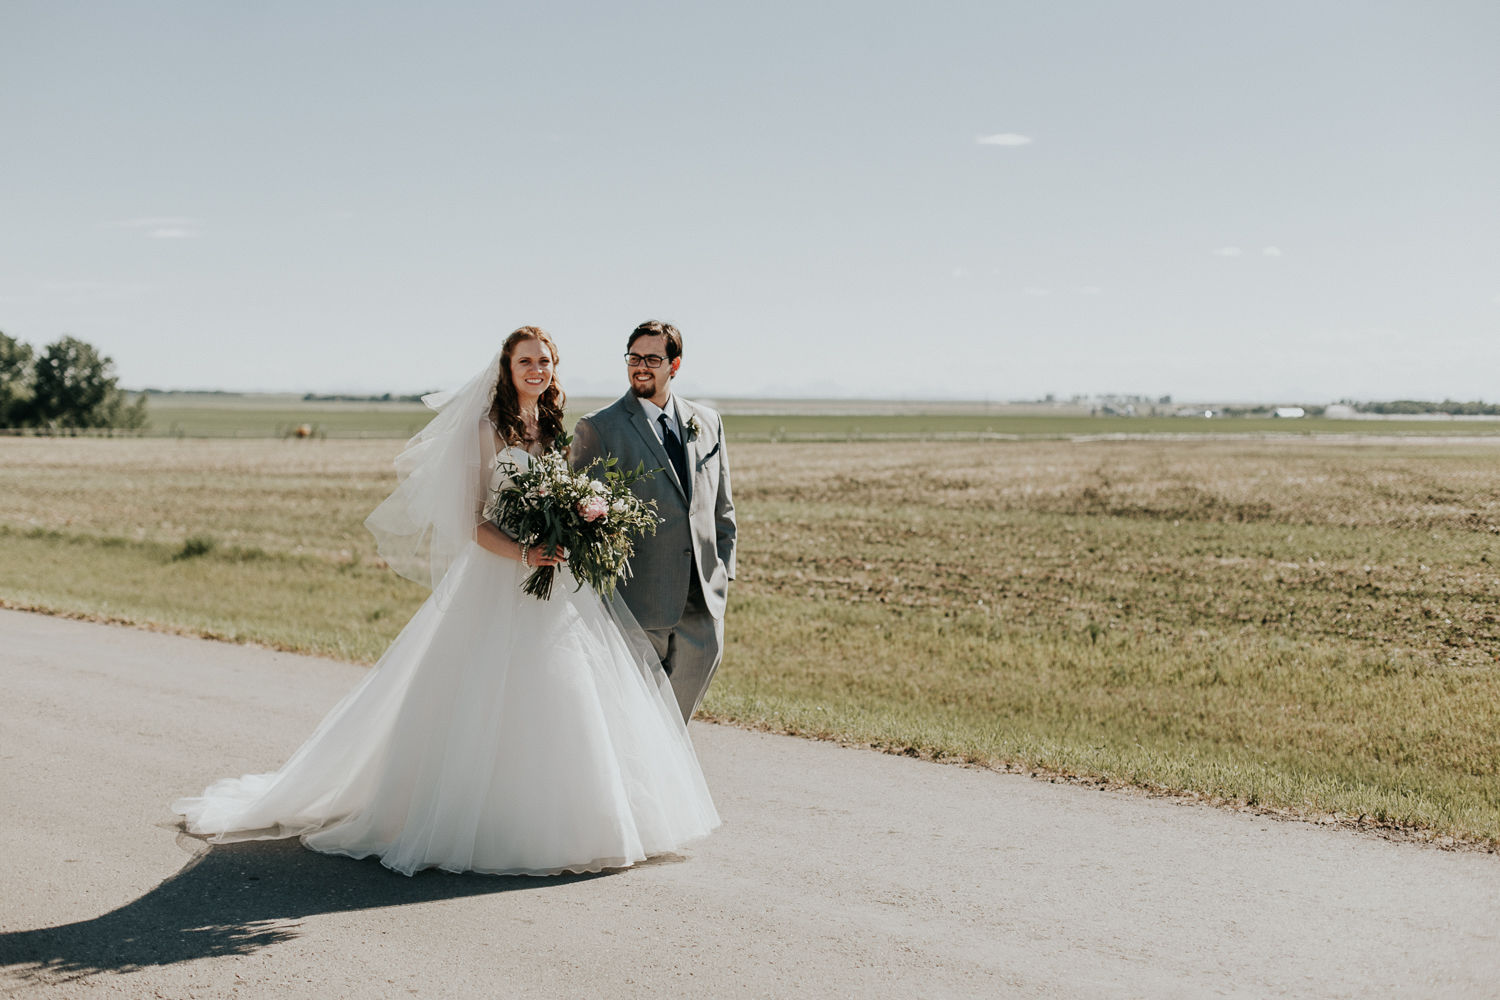 lethbridge-wedding-photographer-love-and-be-loved-photography-dan-tynnea-picture-image-photo-168.jpg